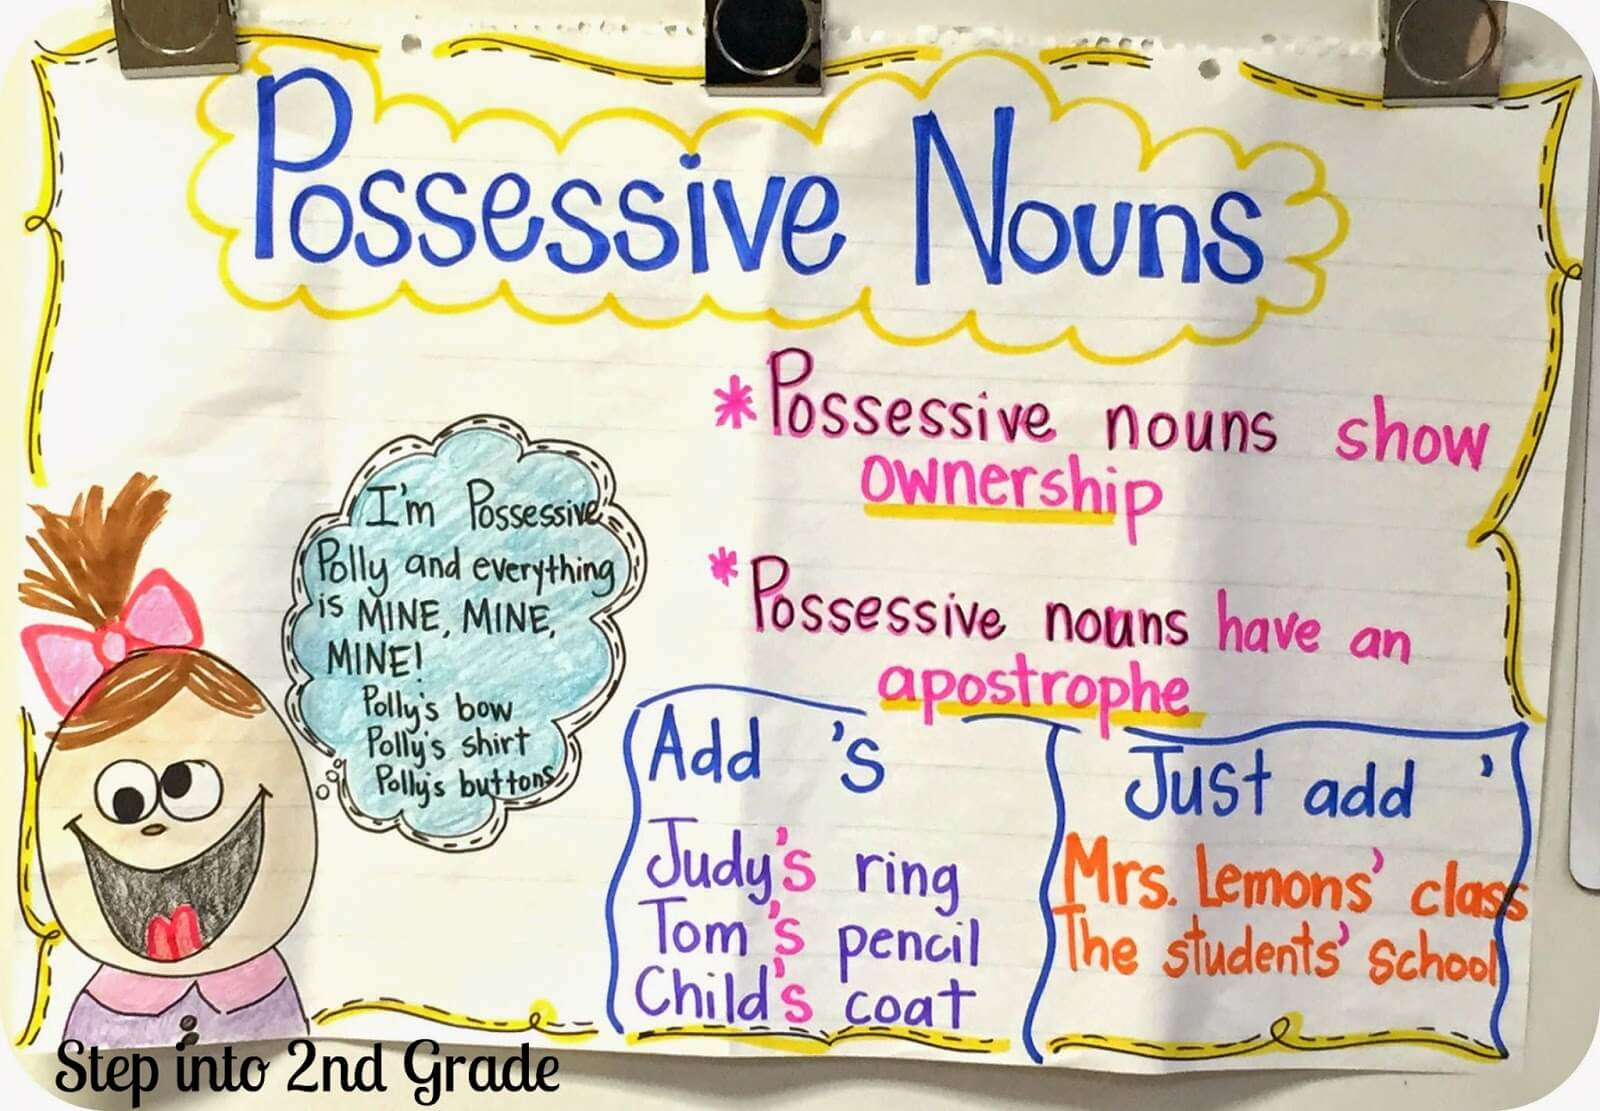 hight resolution of Possessive Nouns - Amy Lemons